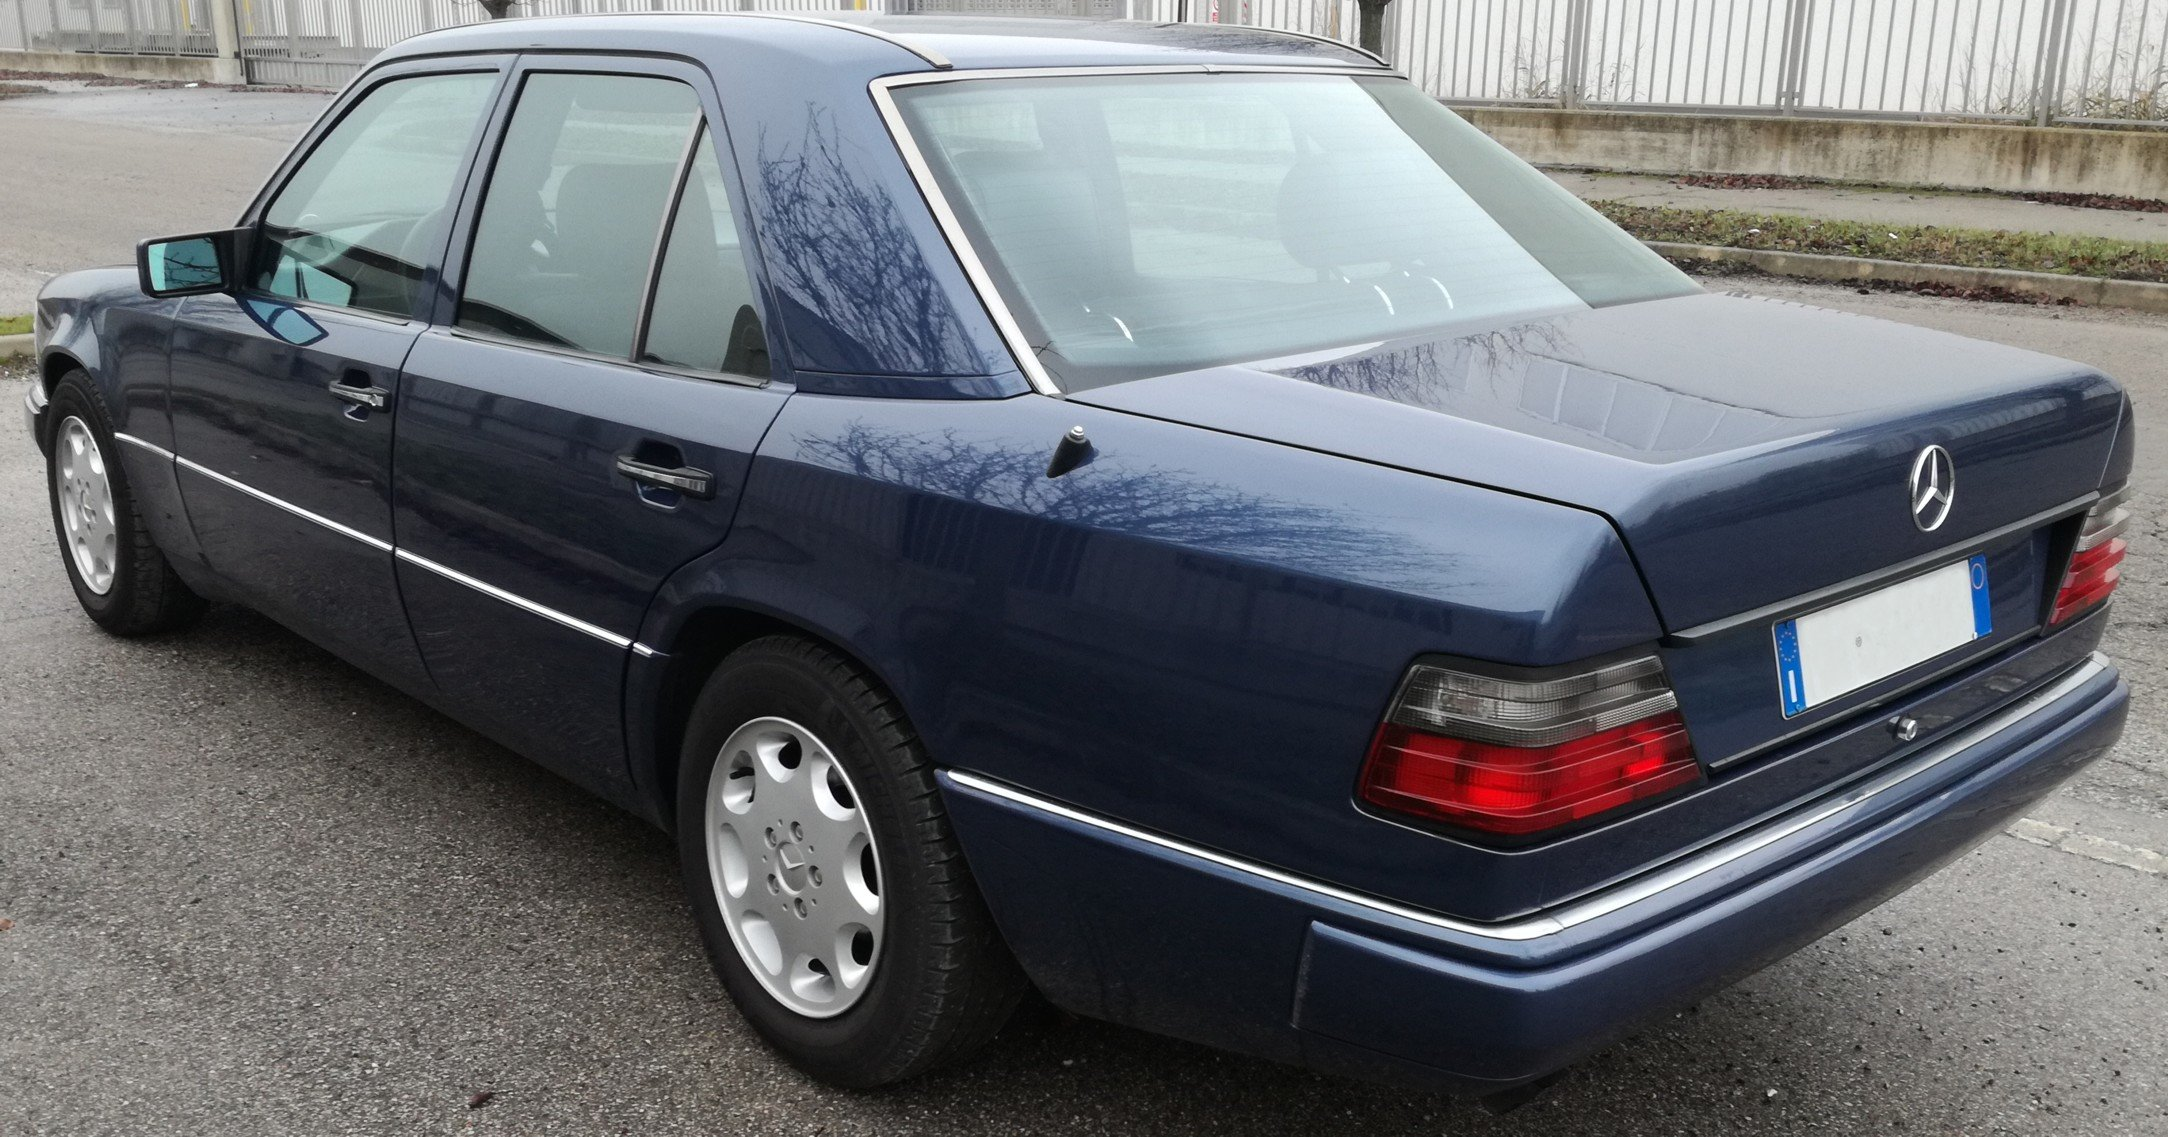 1992 MERCEDES BENZ W124 300D TD For Sale (picture 2 of 6)